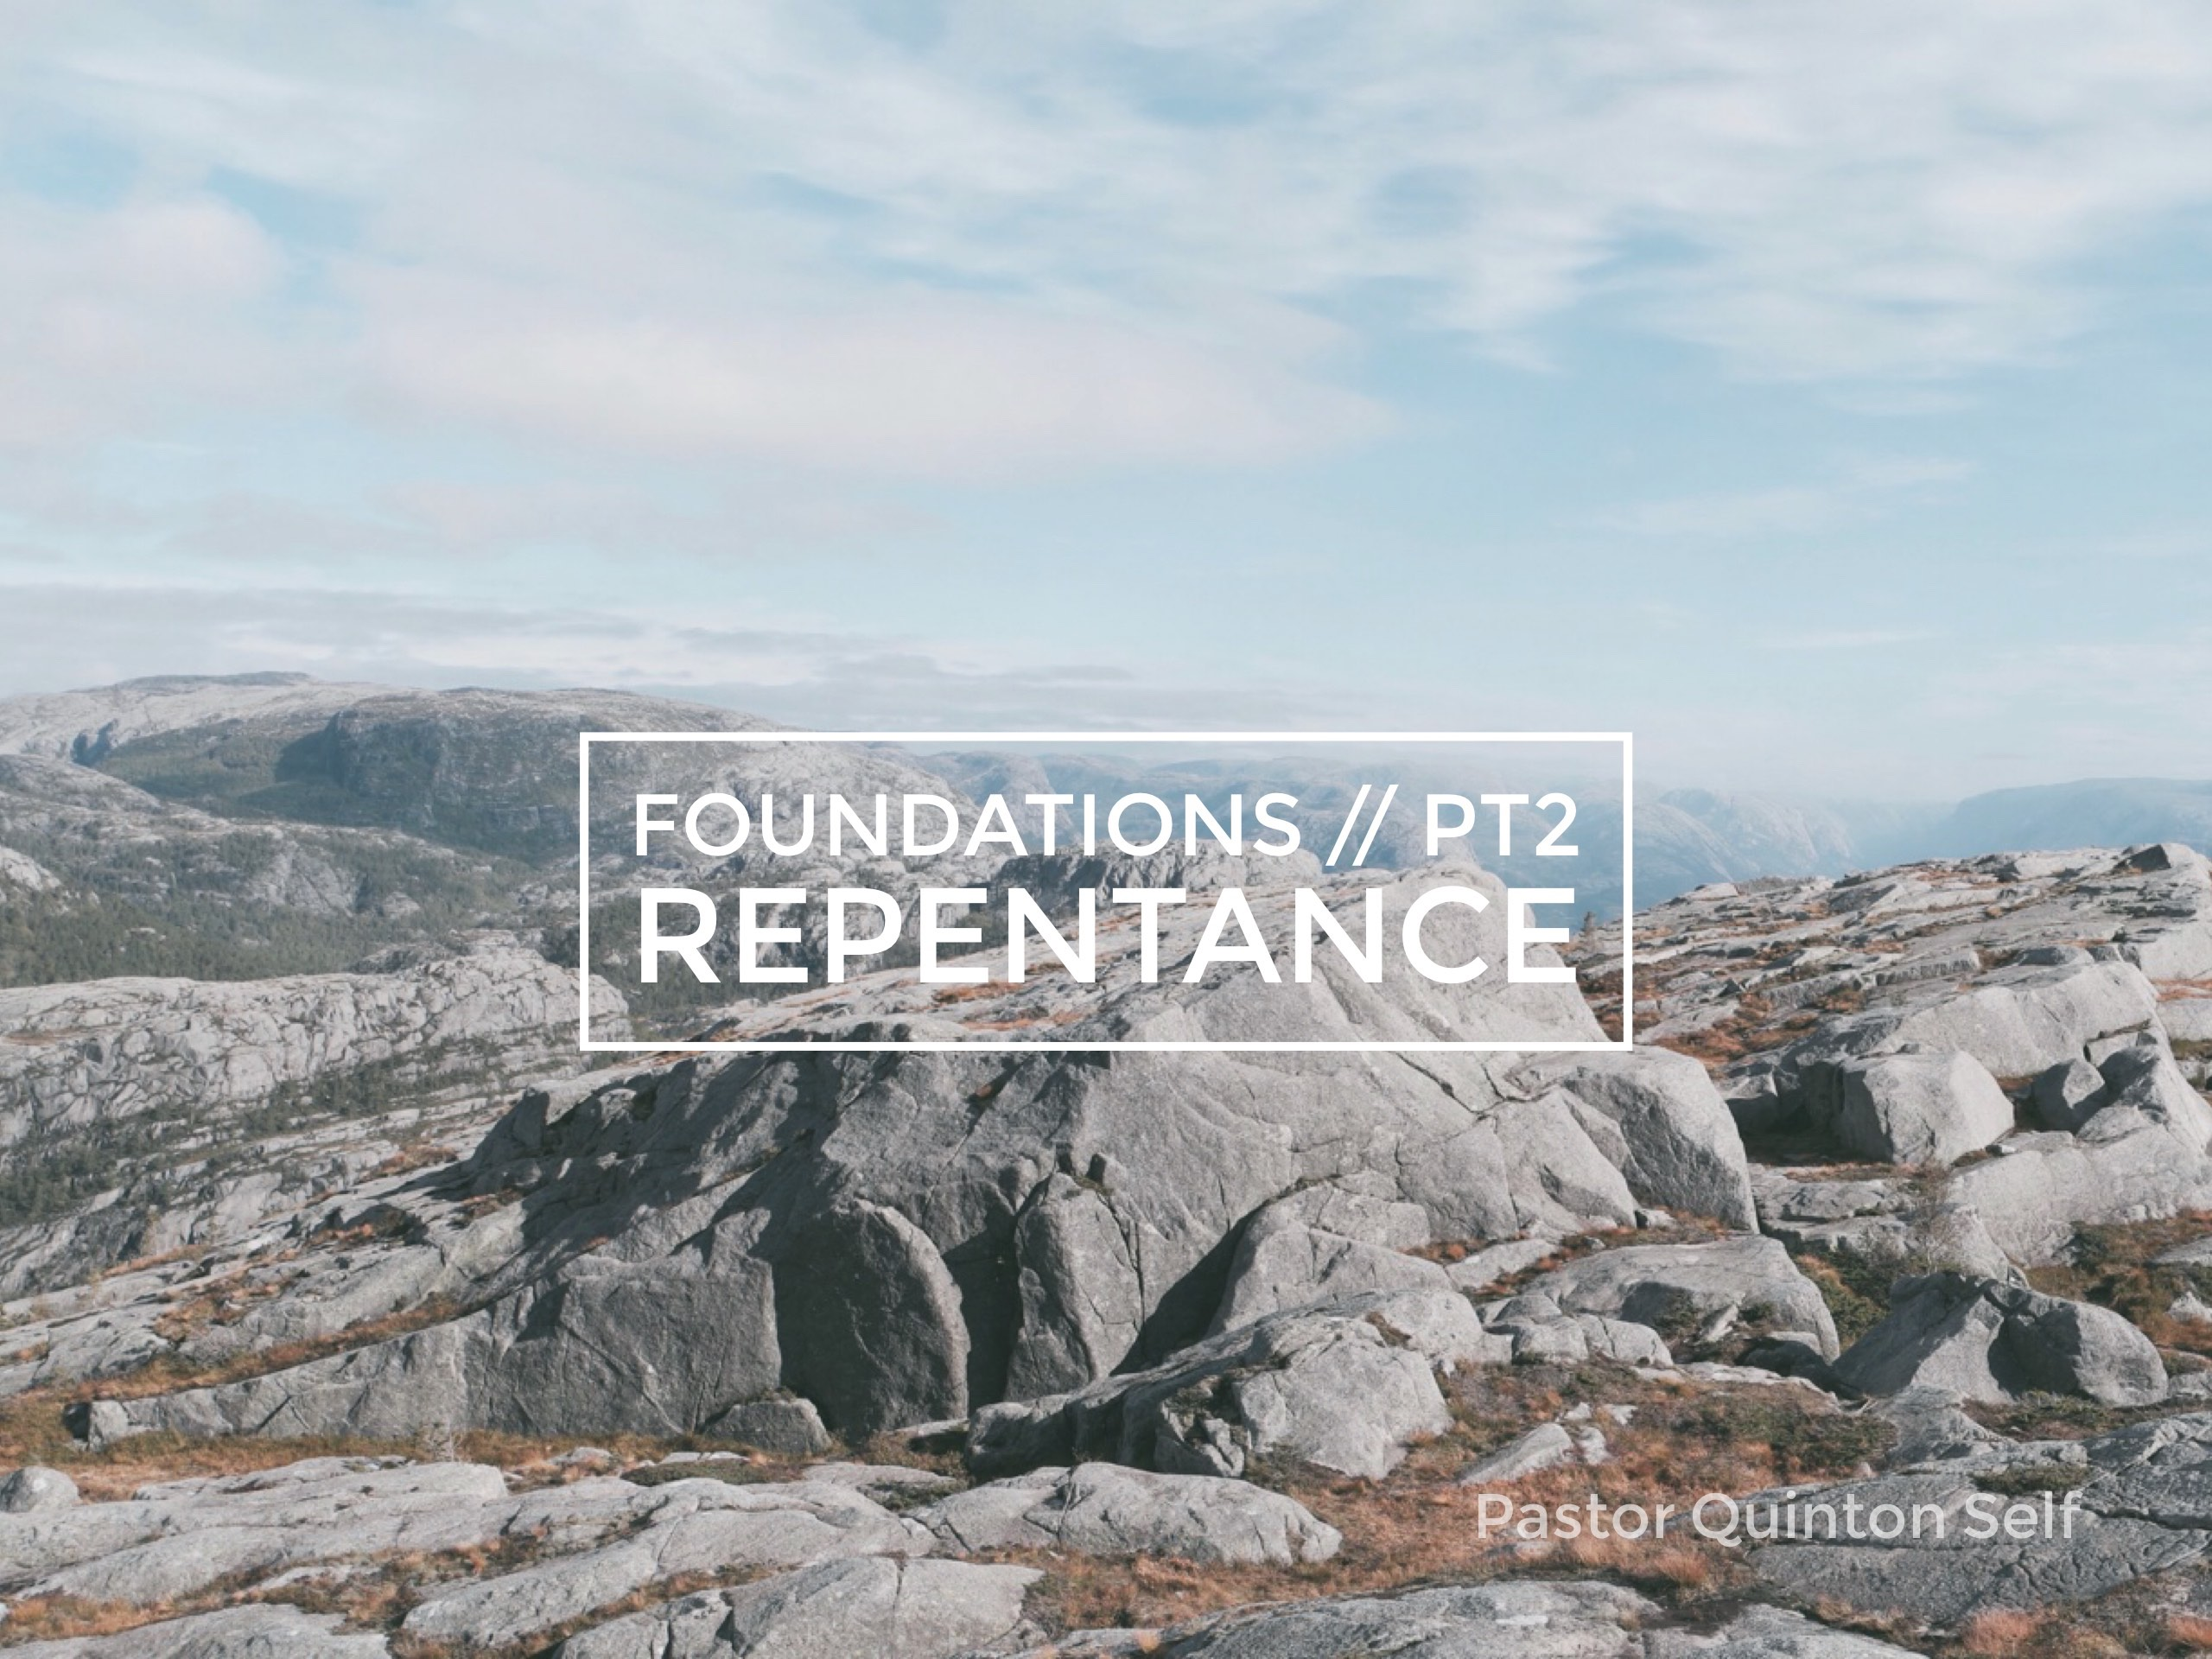 Foundations, Part 2: Repentance